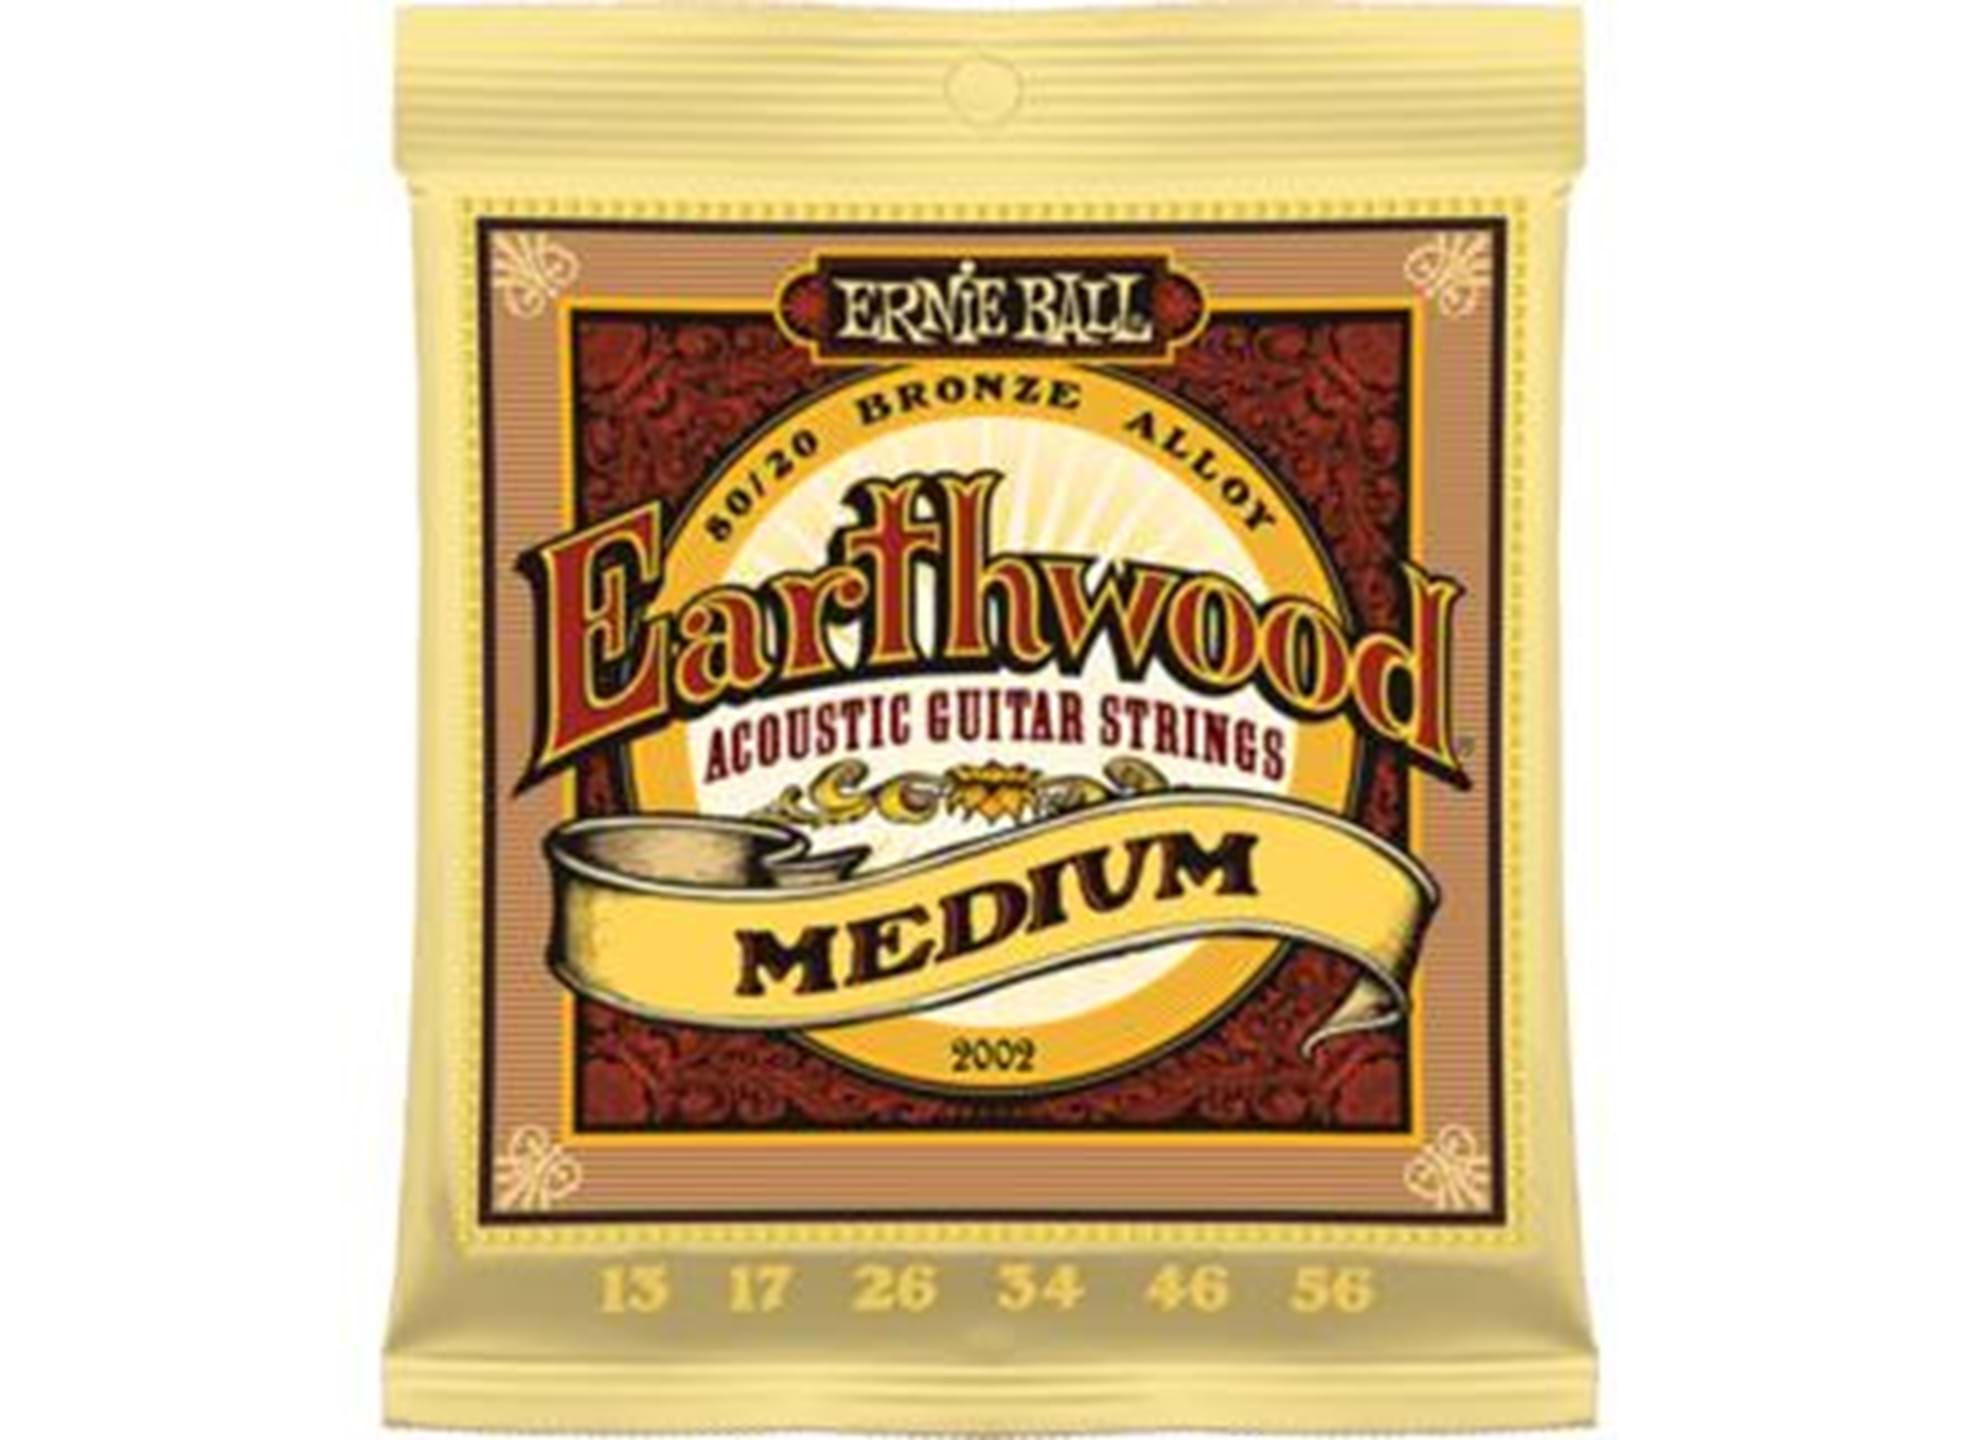 013-056 Earthwood Medium 2002